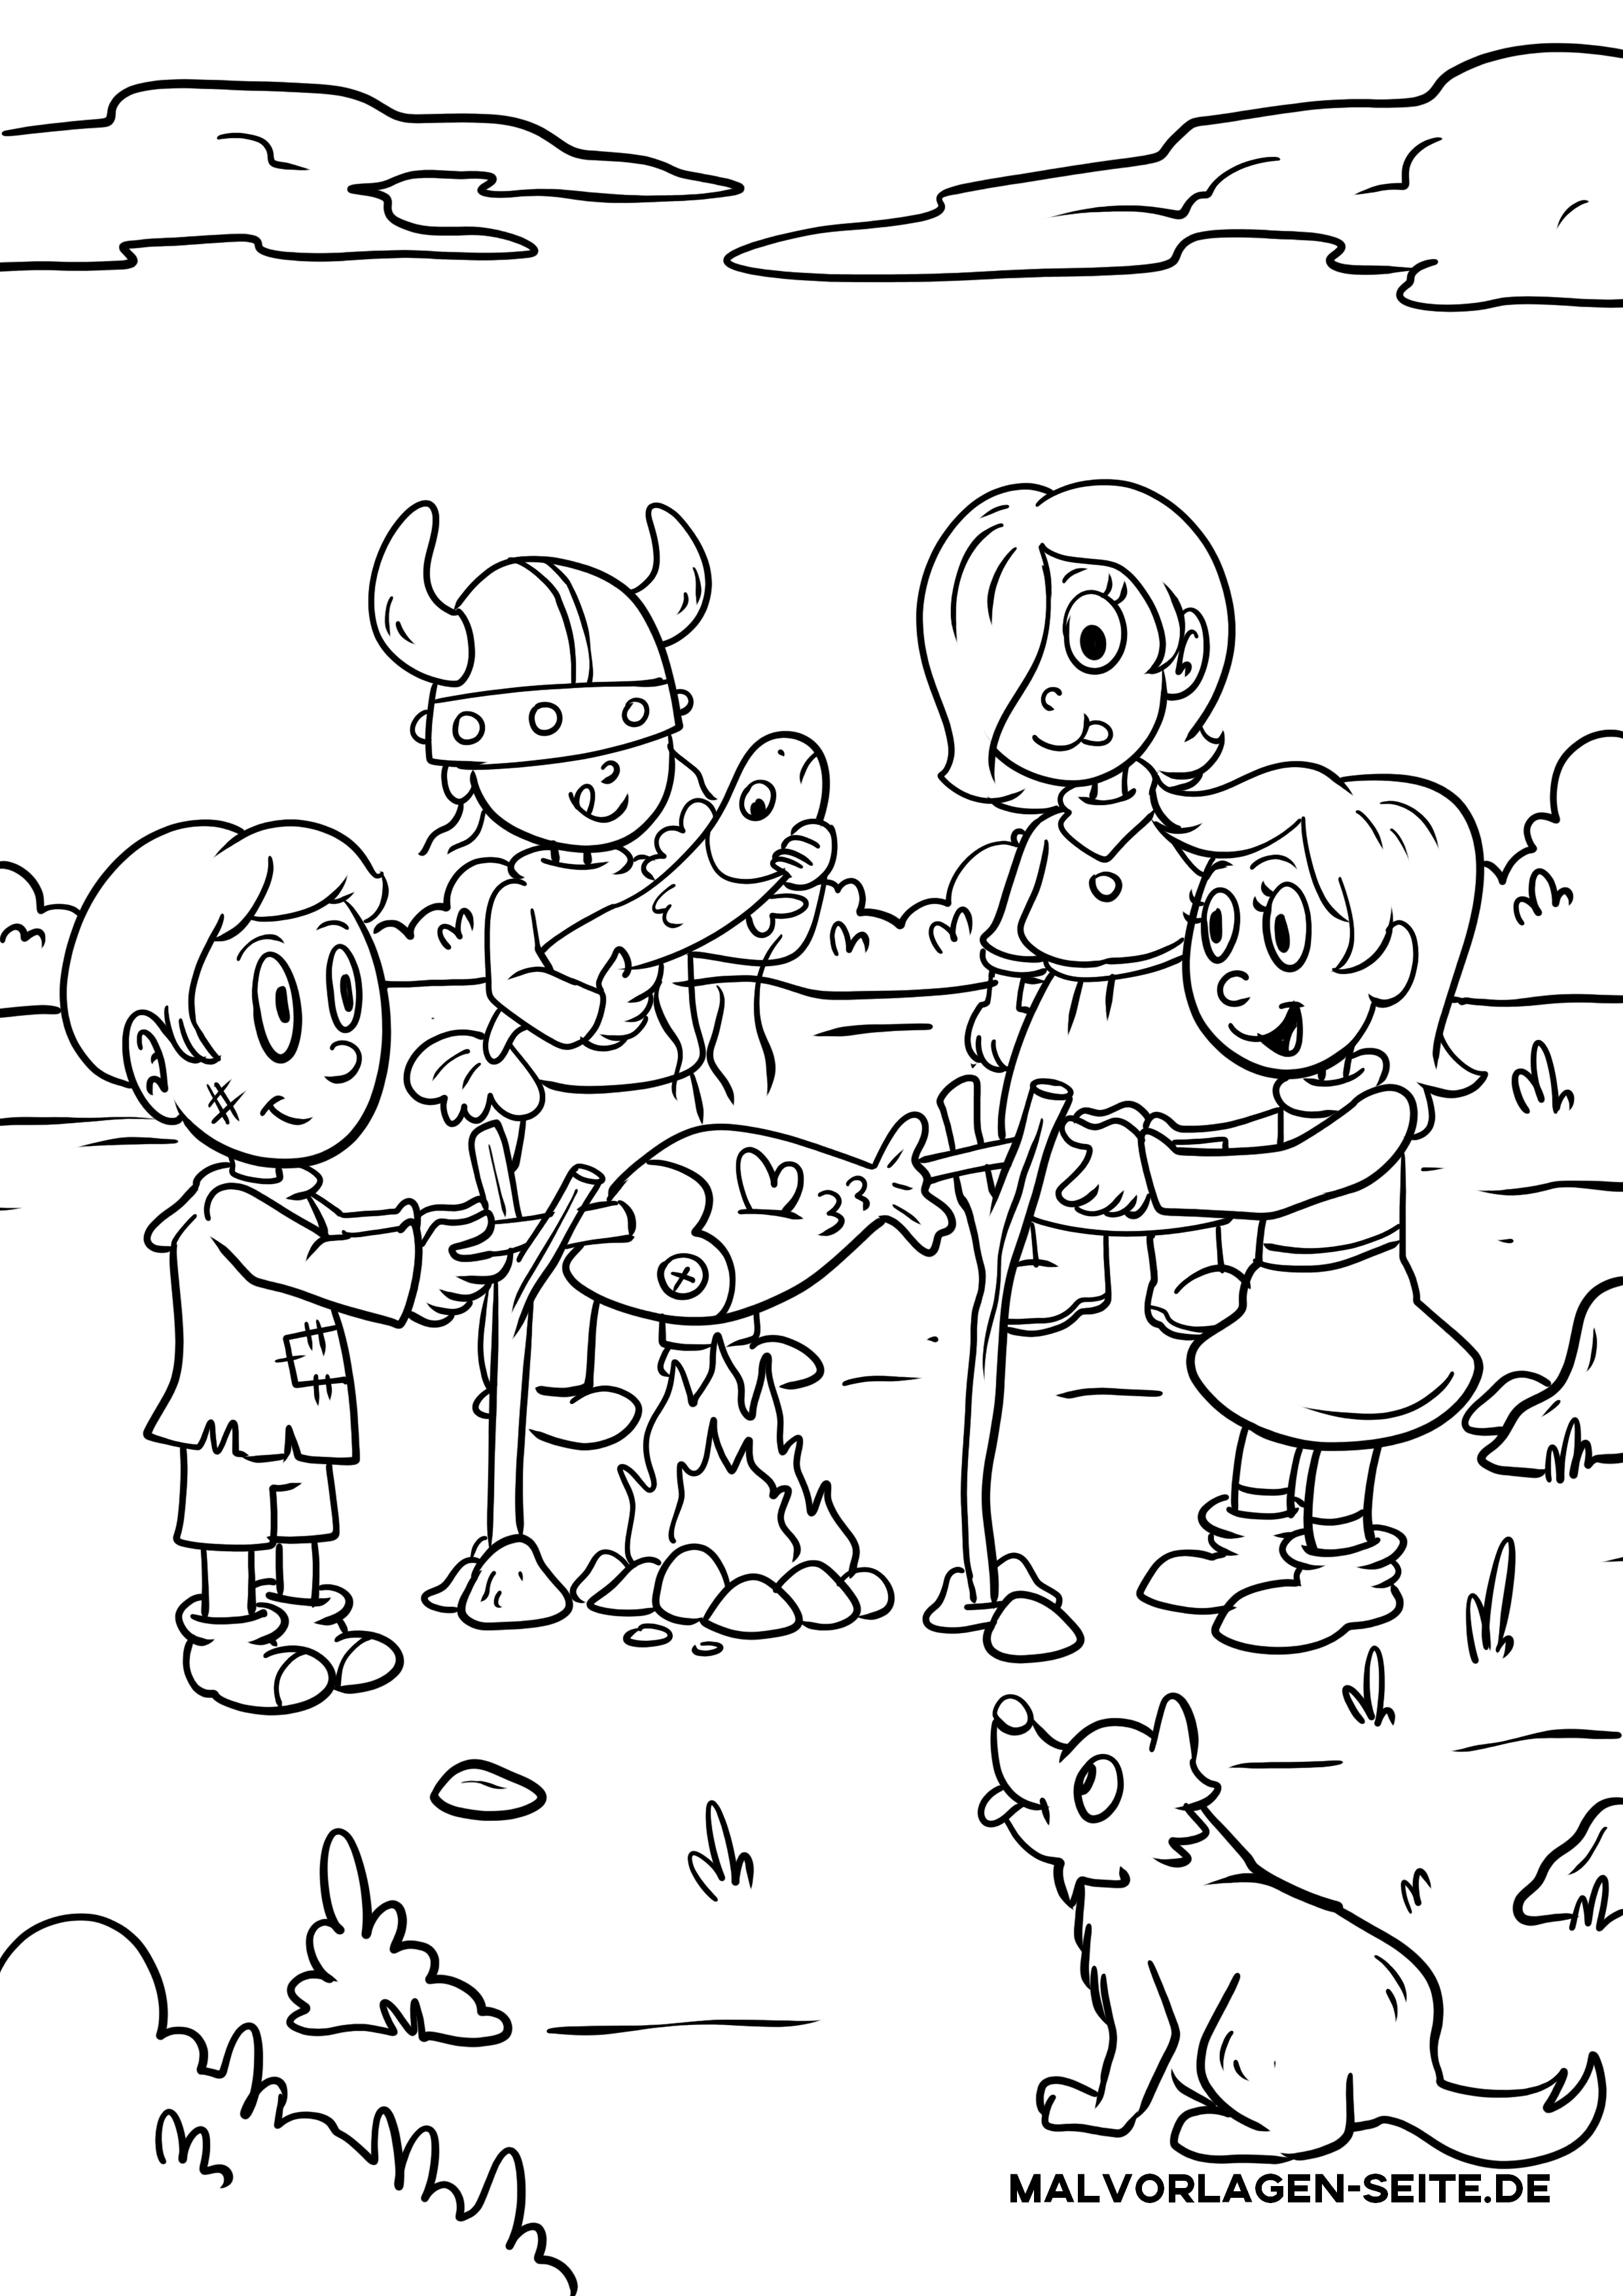 Coloring page viking children - free coloring pages